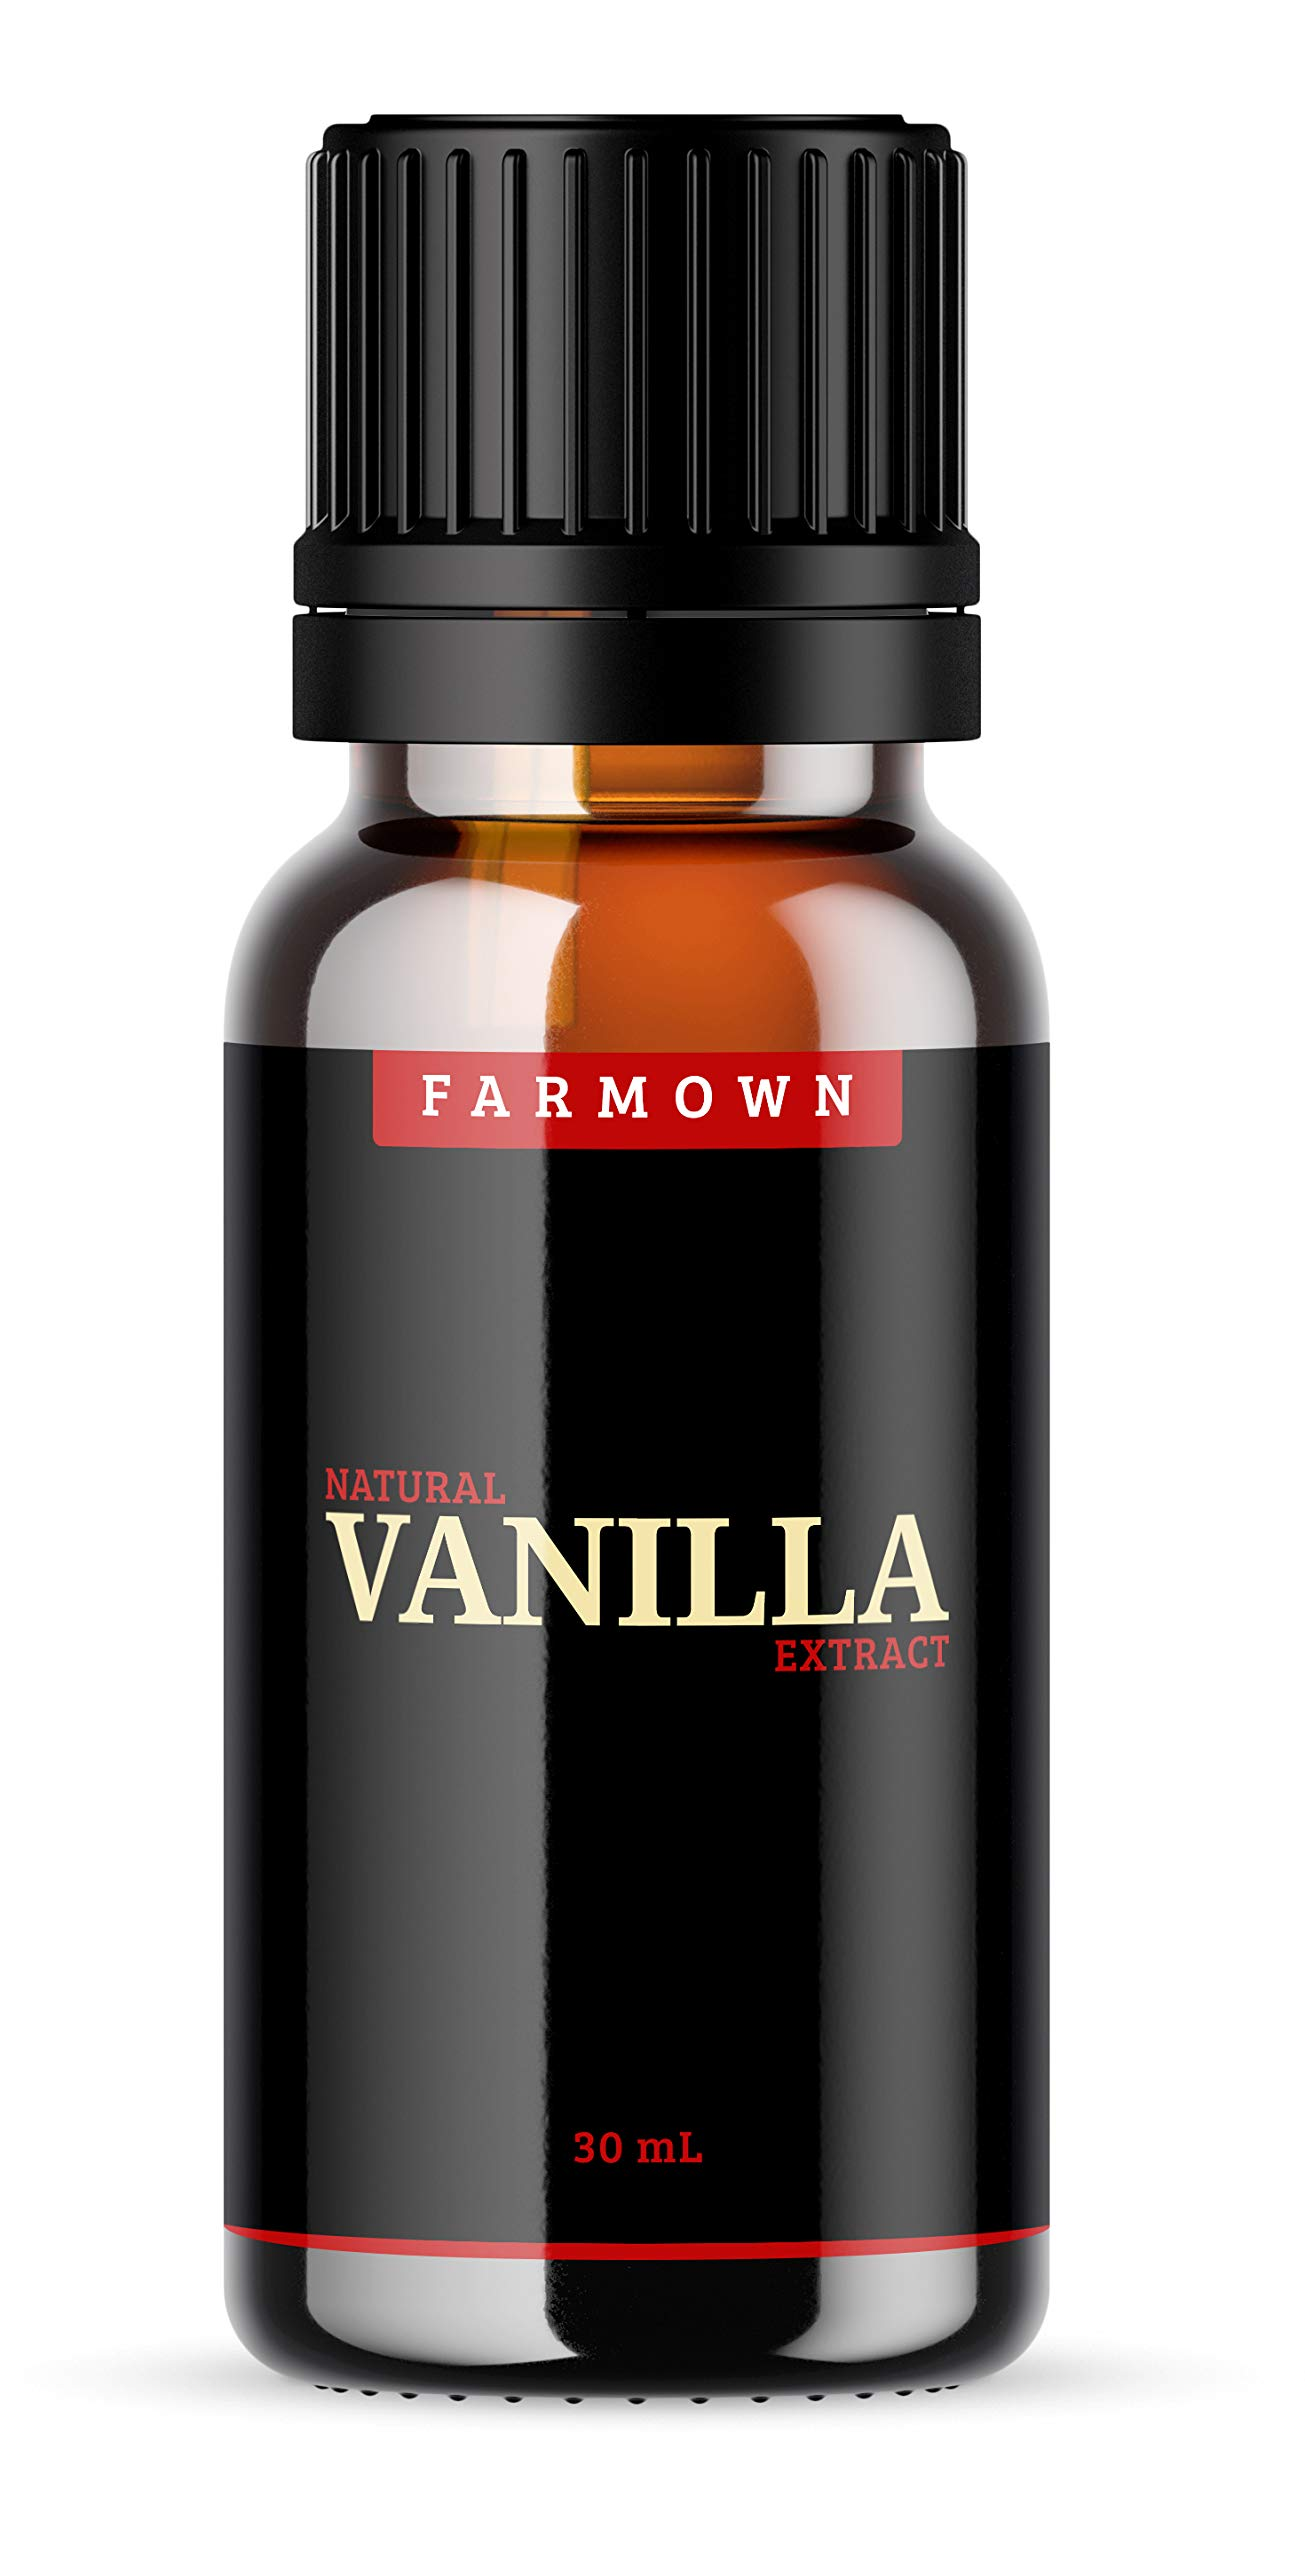 FarmOwn Natural Real Vanilla Extract 30 ml Essence for Cooking, Baking, Food, Milk, Ice Cream, Cake